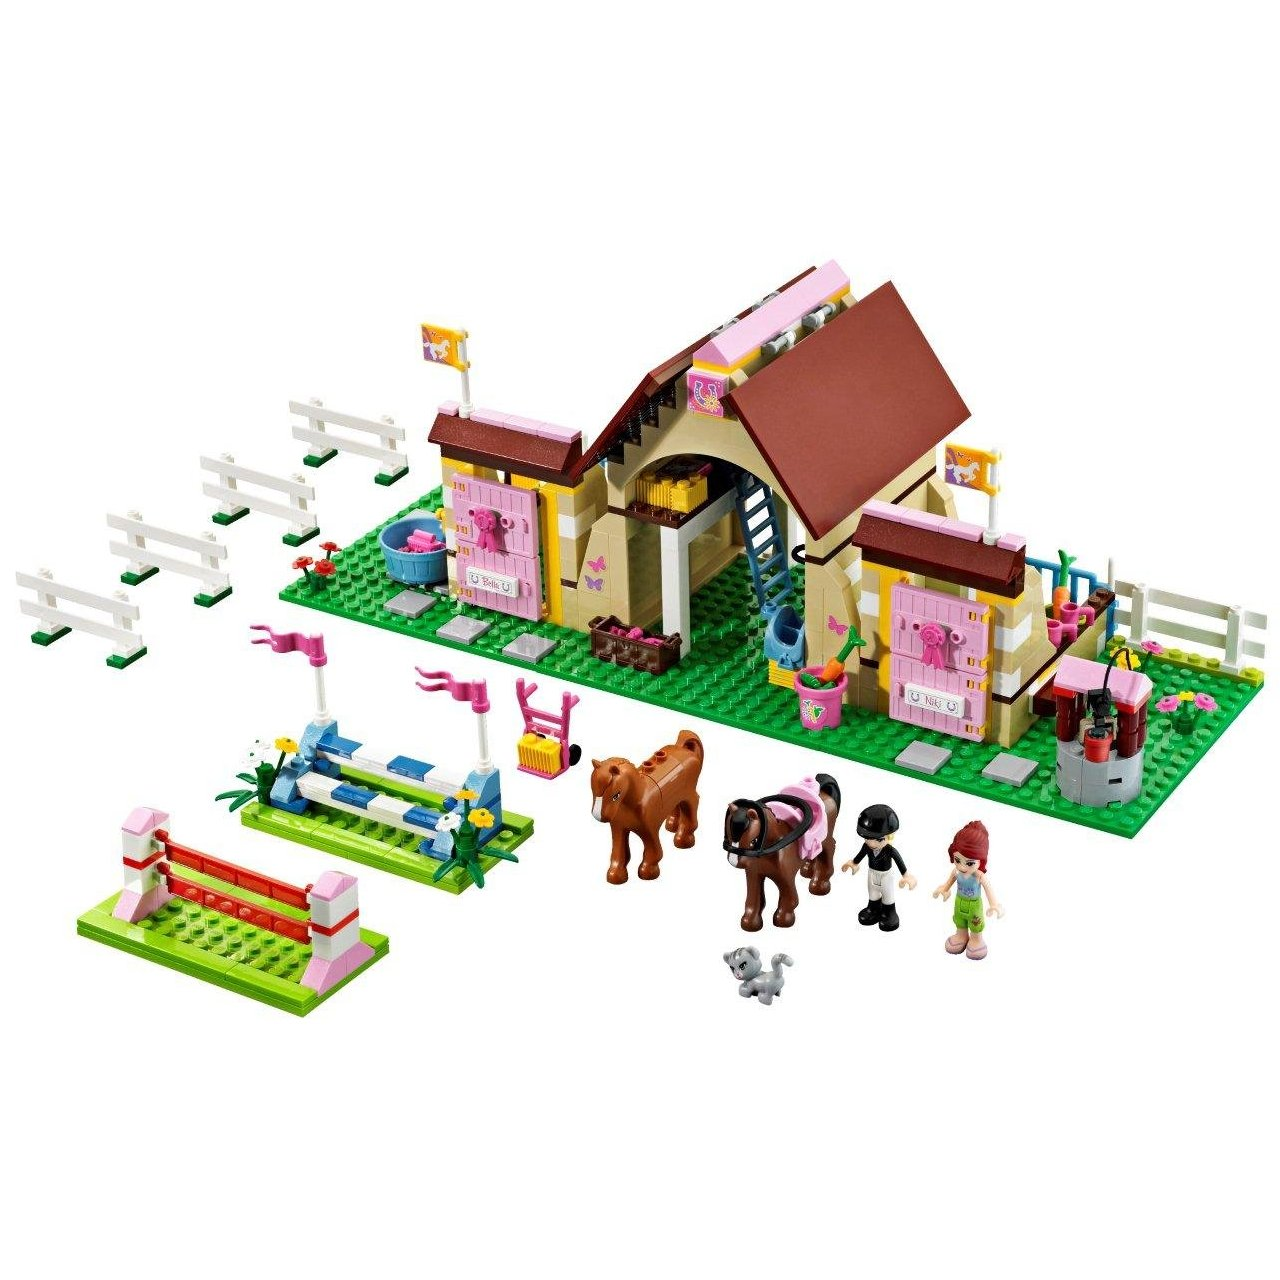 Toys For Friends : Lego friends inspire girls globally sets